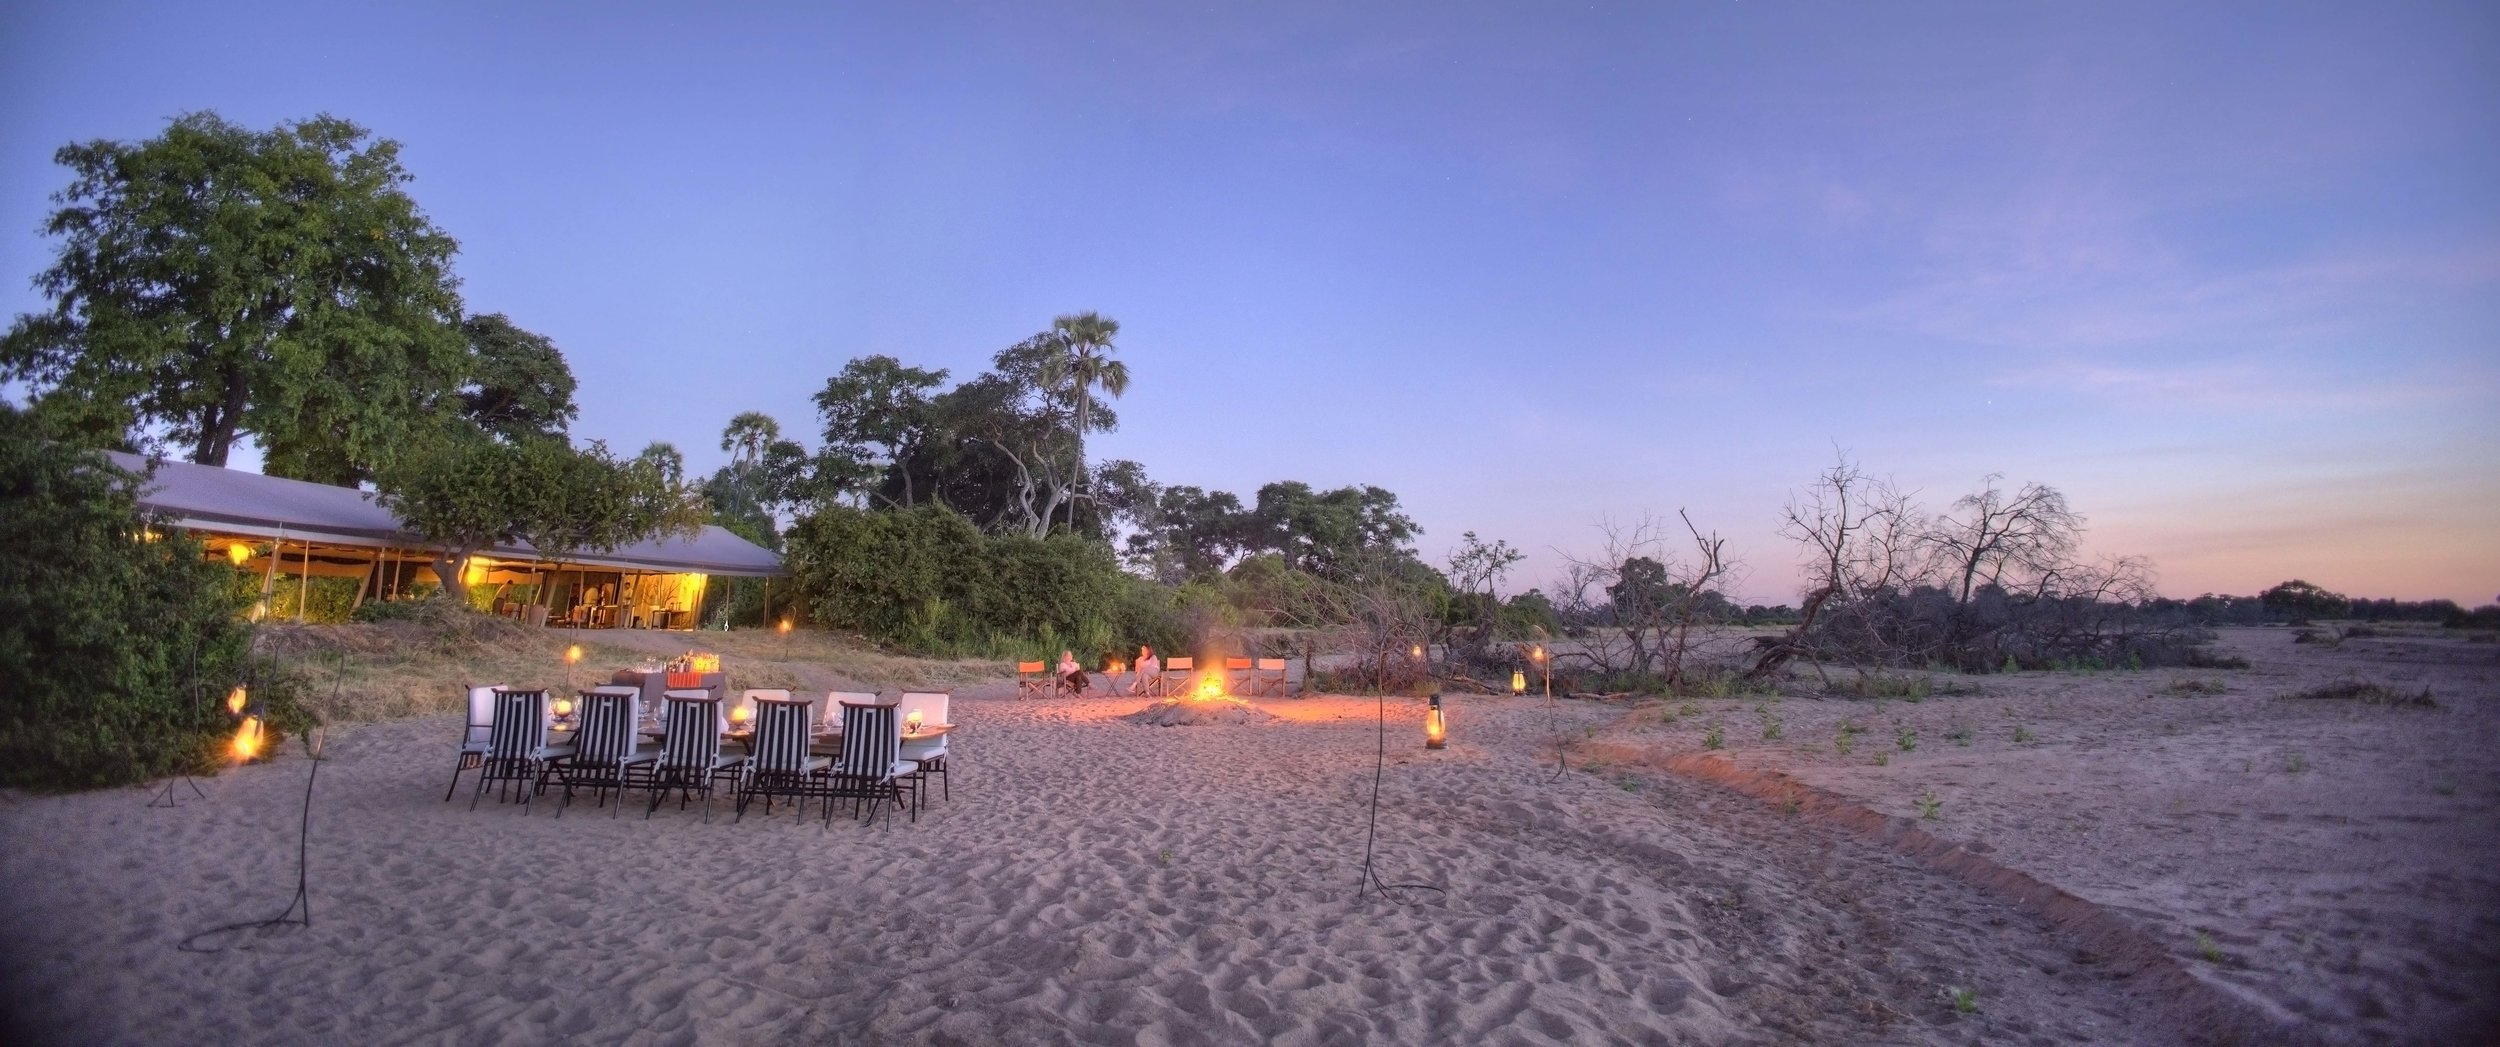 Kwihala-sundowners-and-dinner-set-up-around-fire.jpg